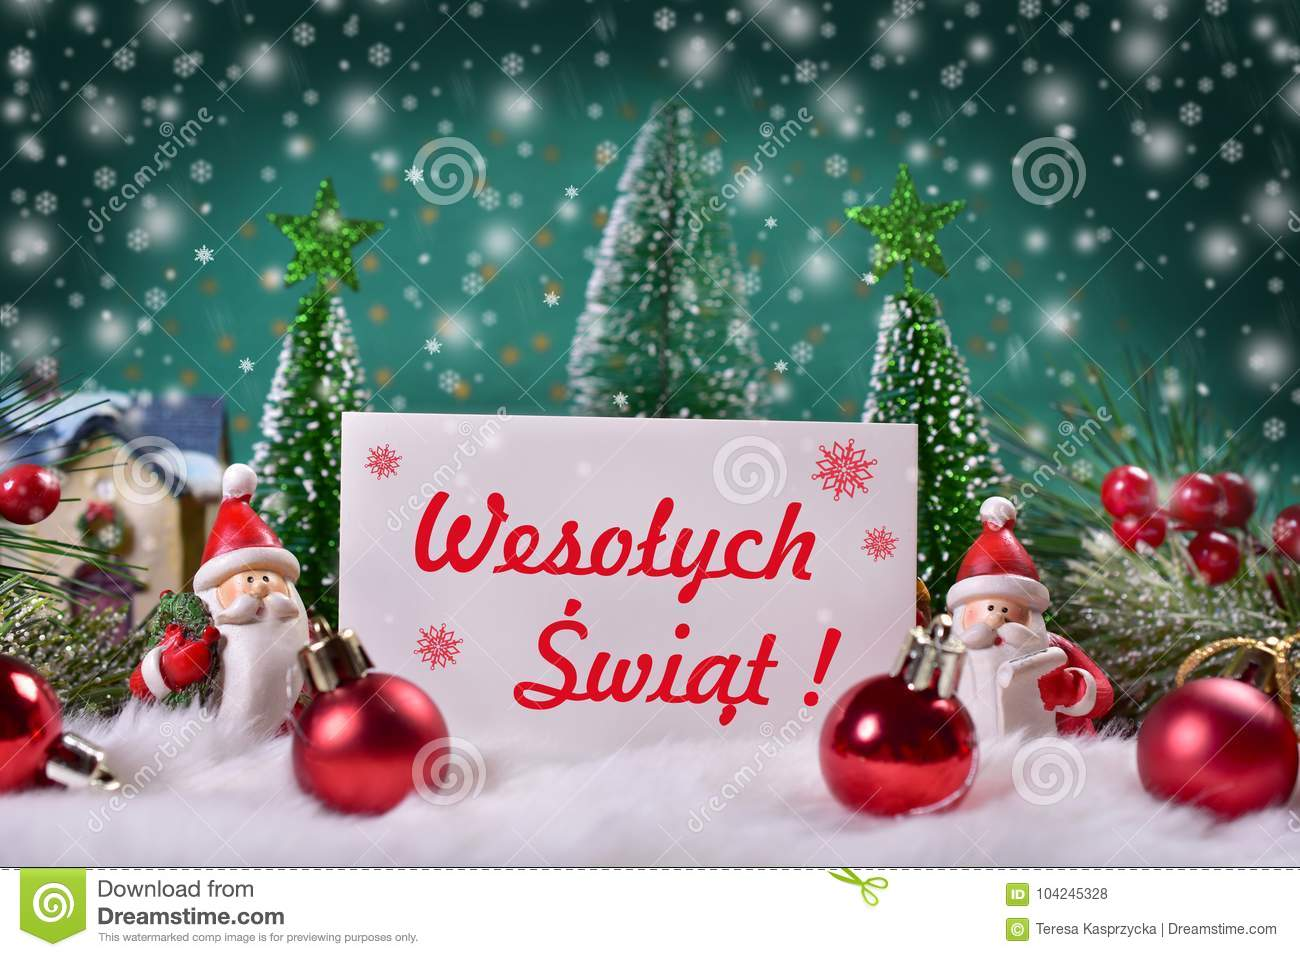 christmas greeting card with red text merry christmas in polish - How To Say Merry Christmas In Polish